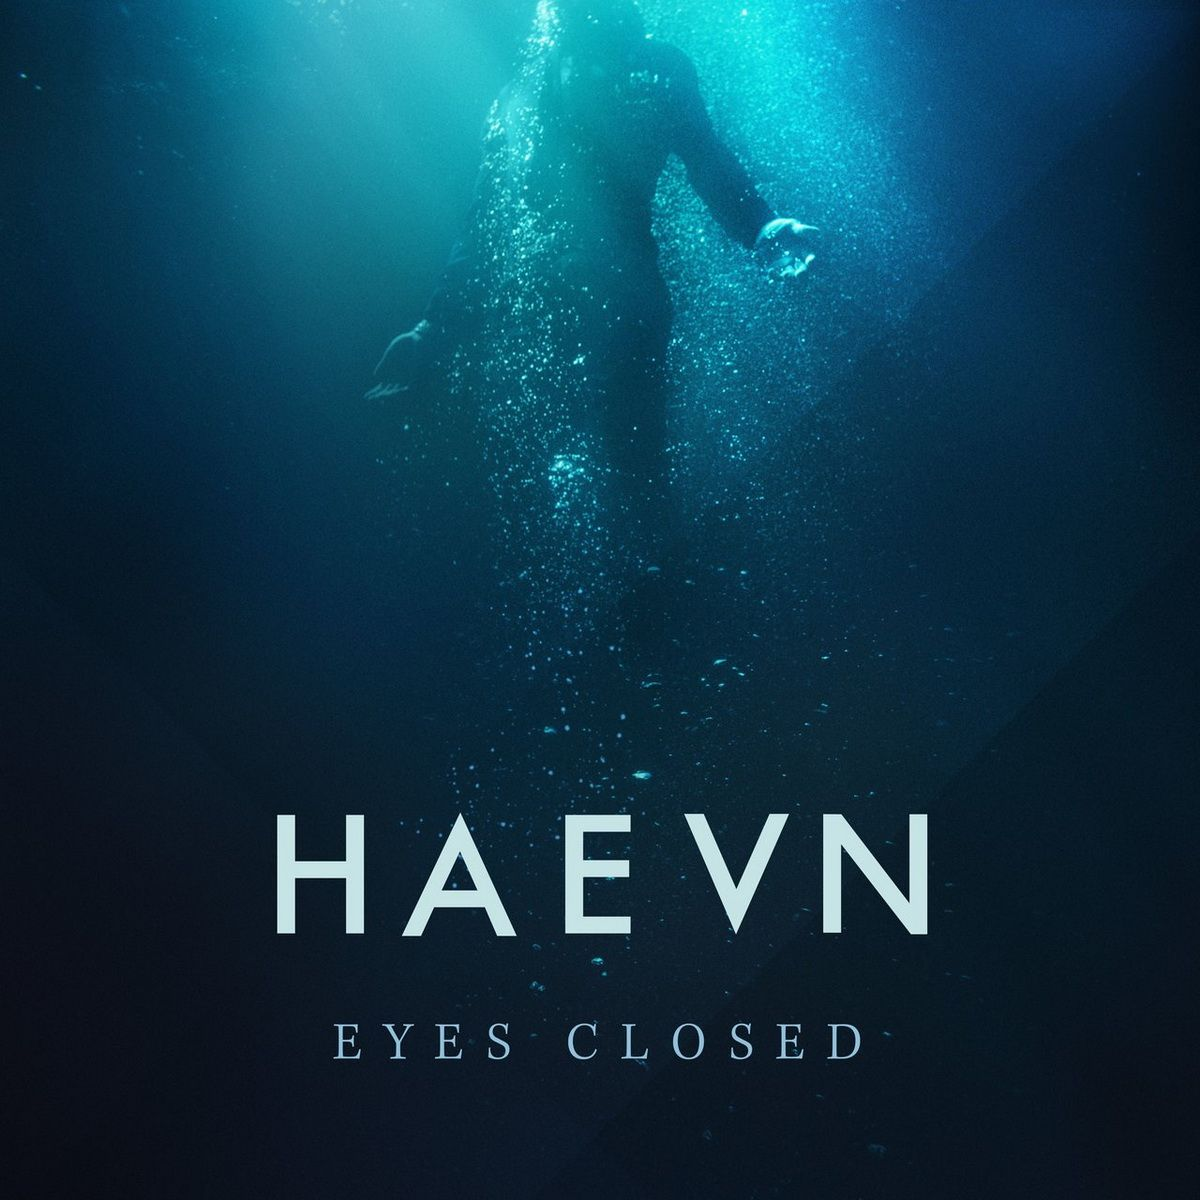 Haevn - Eyes Closed album cover